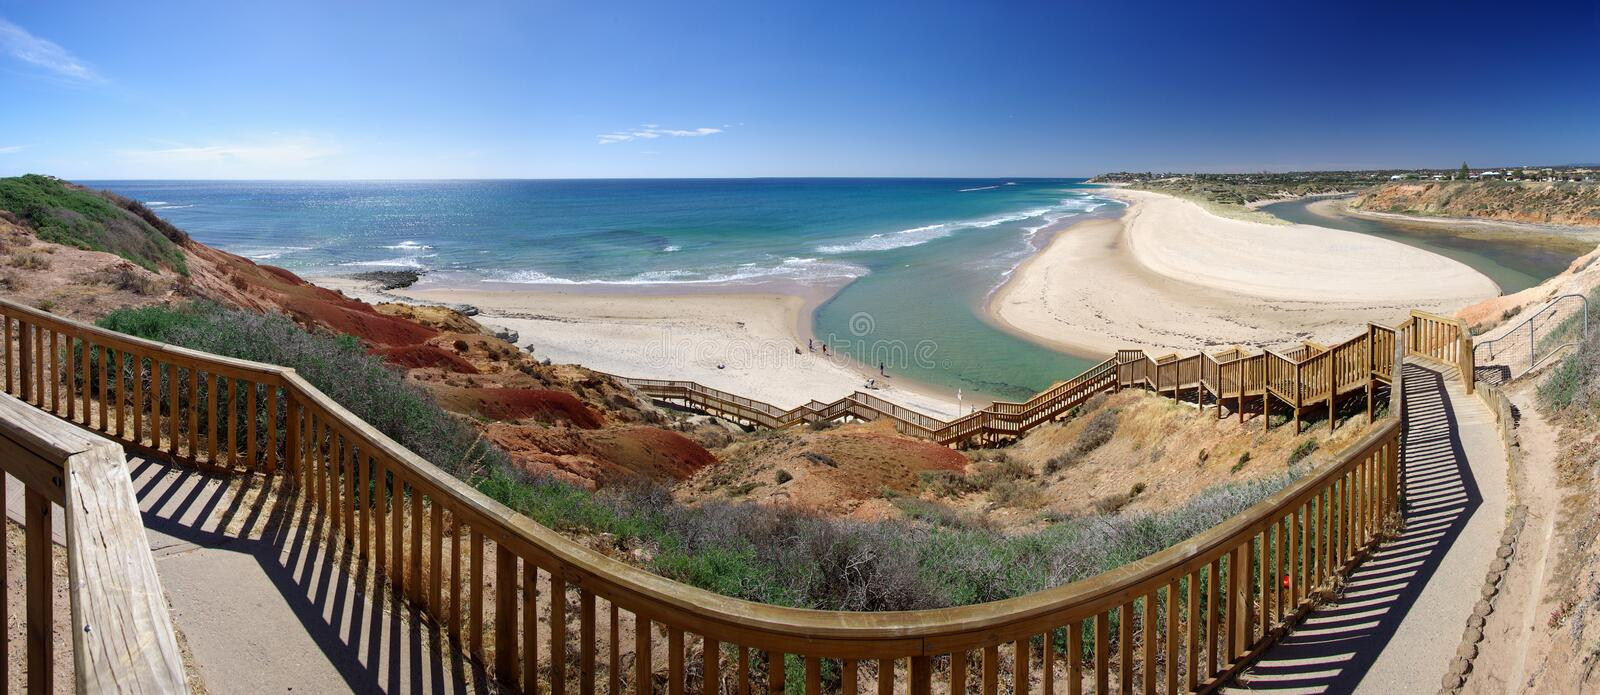 Port Noarlunga Beach Steps royalty free stock photos